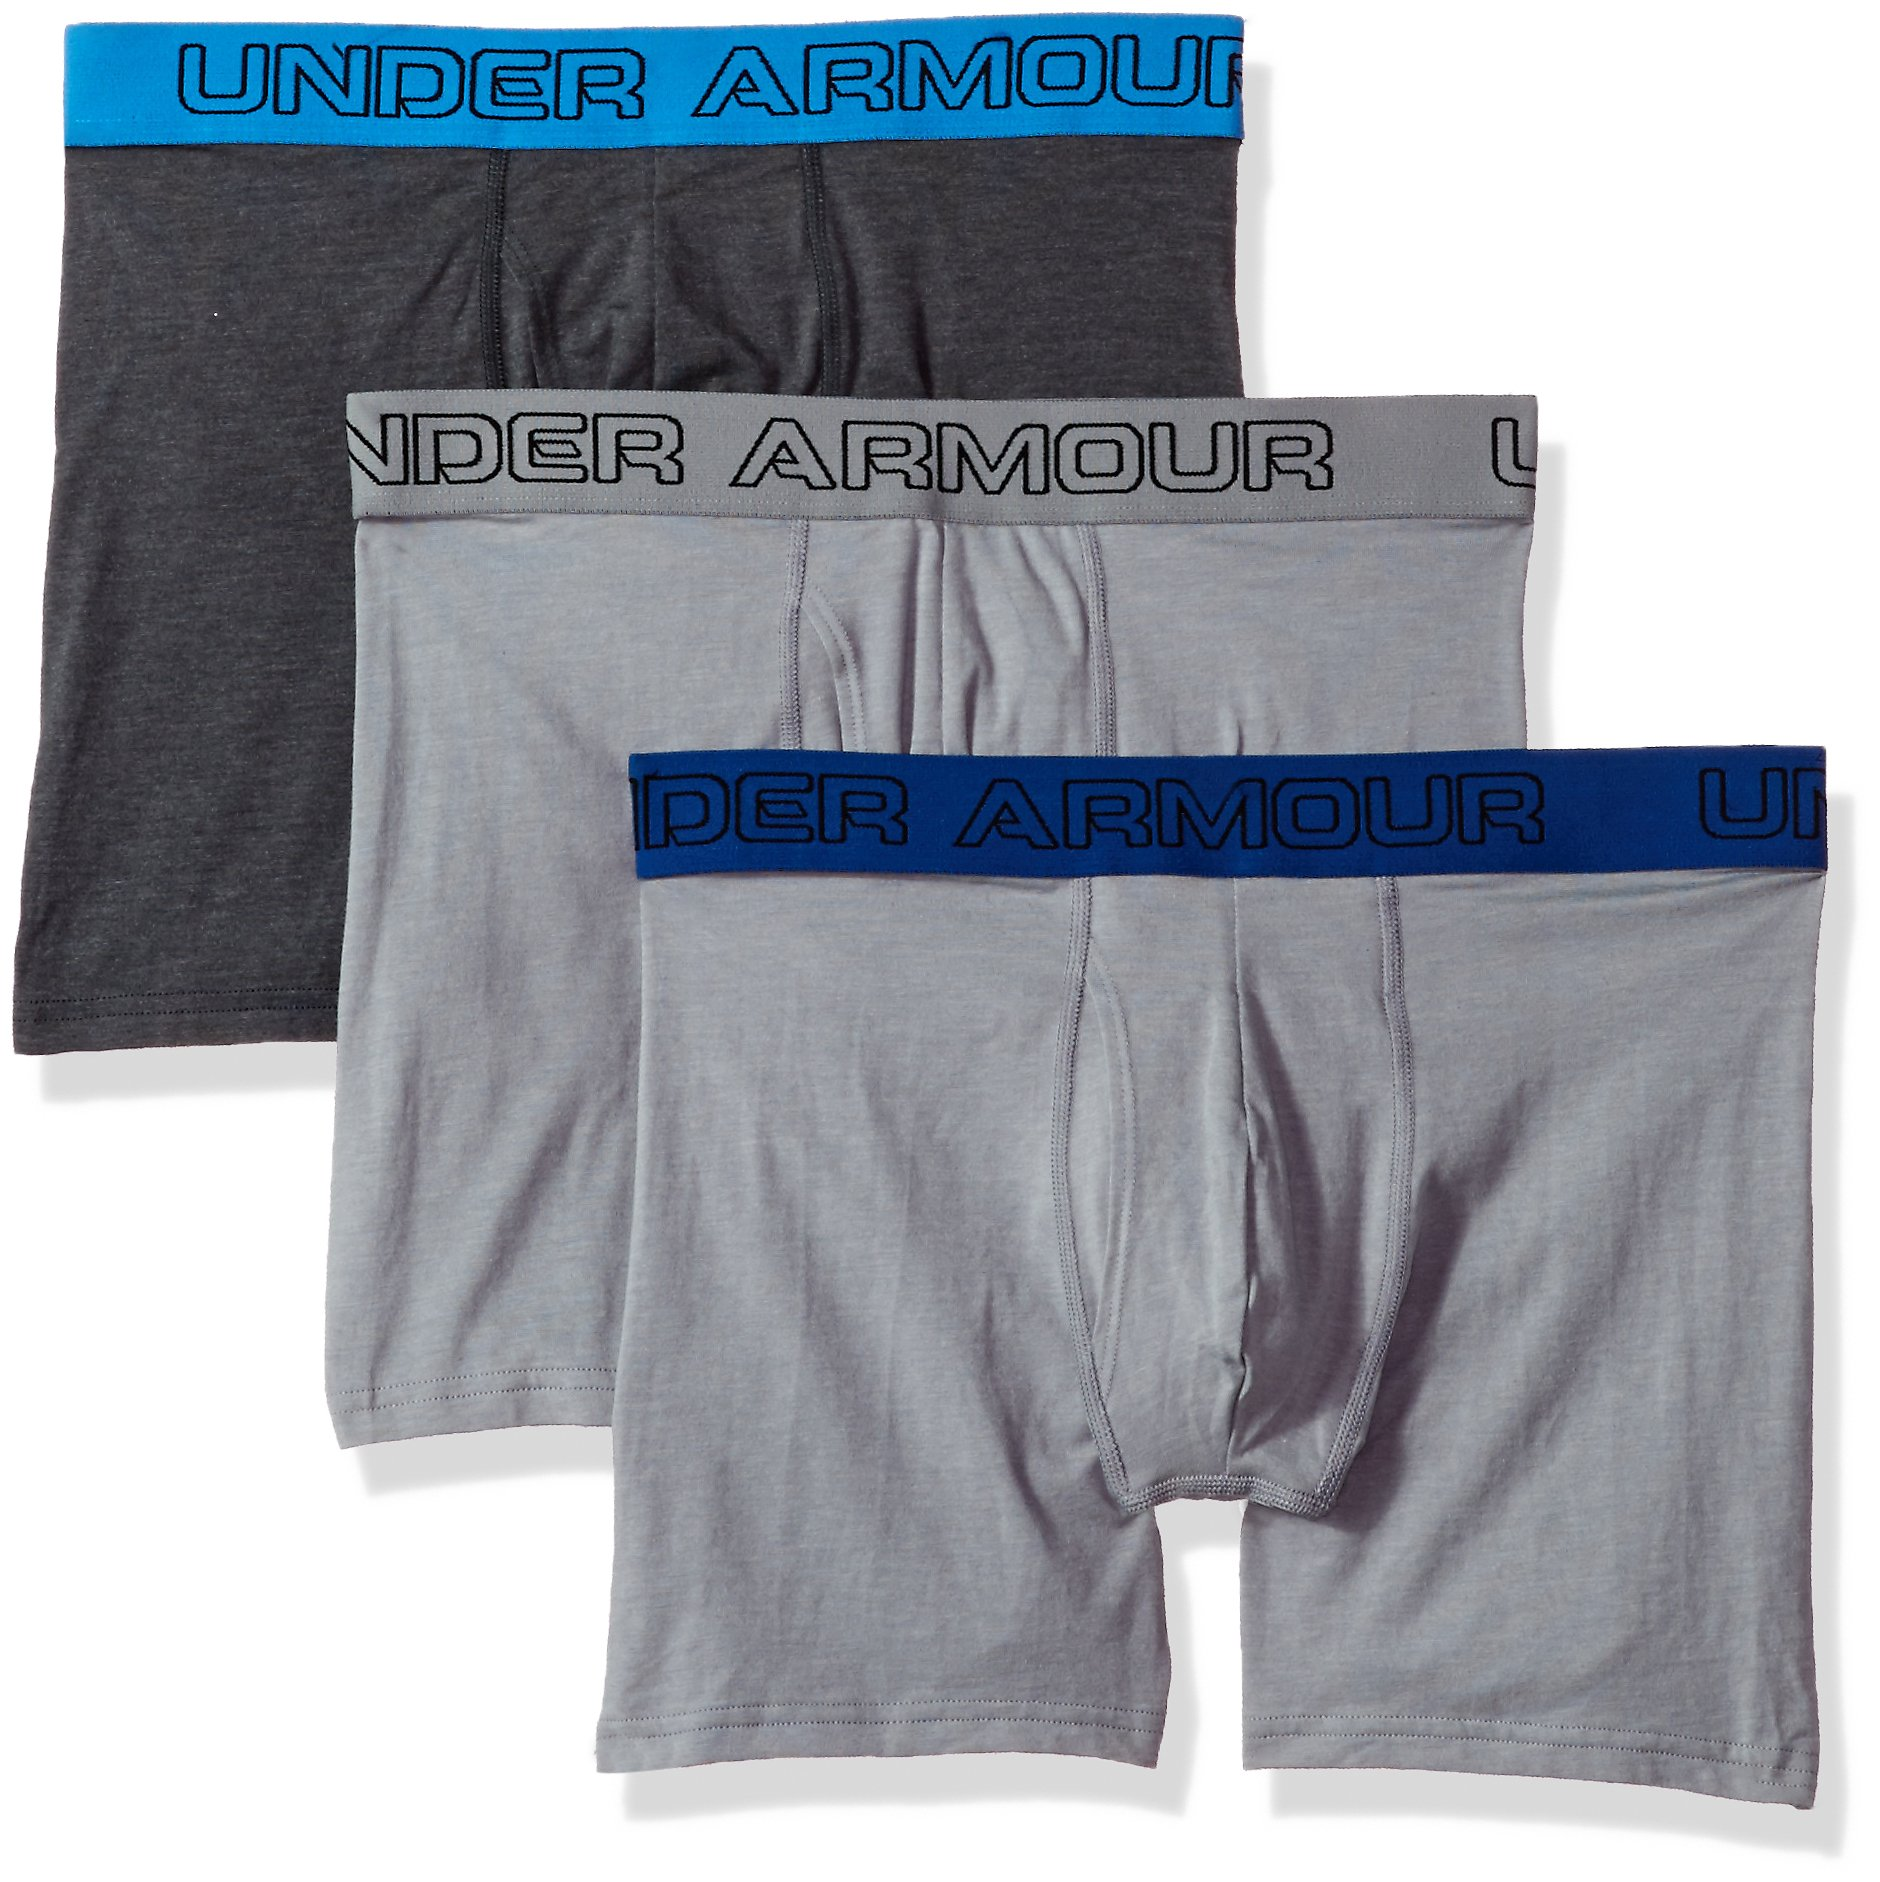 "Bekleidung Jagen Under Armour Charged Cotton Stretch 6"" Boxershort Unterwäsche 3pack 5xl 1277279"